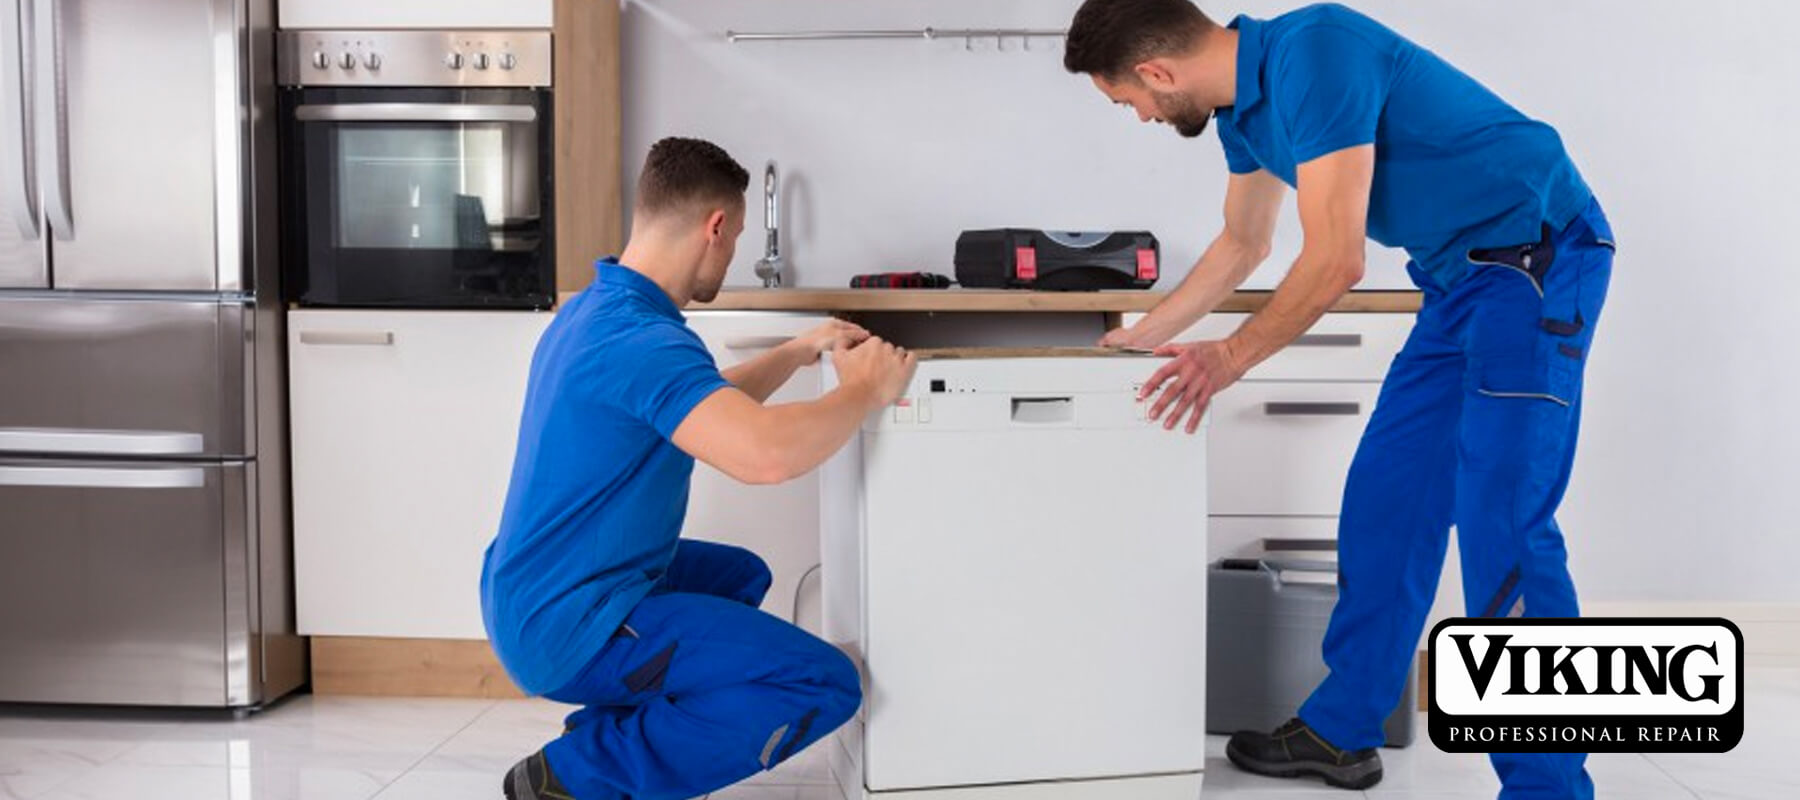 Authorized Viking Appliance Repair Service Los Angeles | Professional Viking Repair